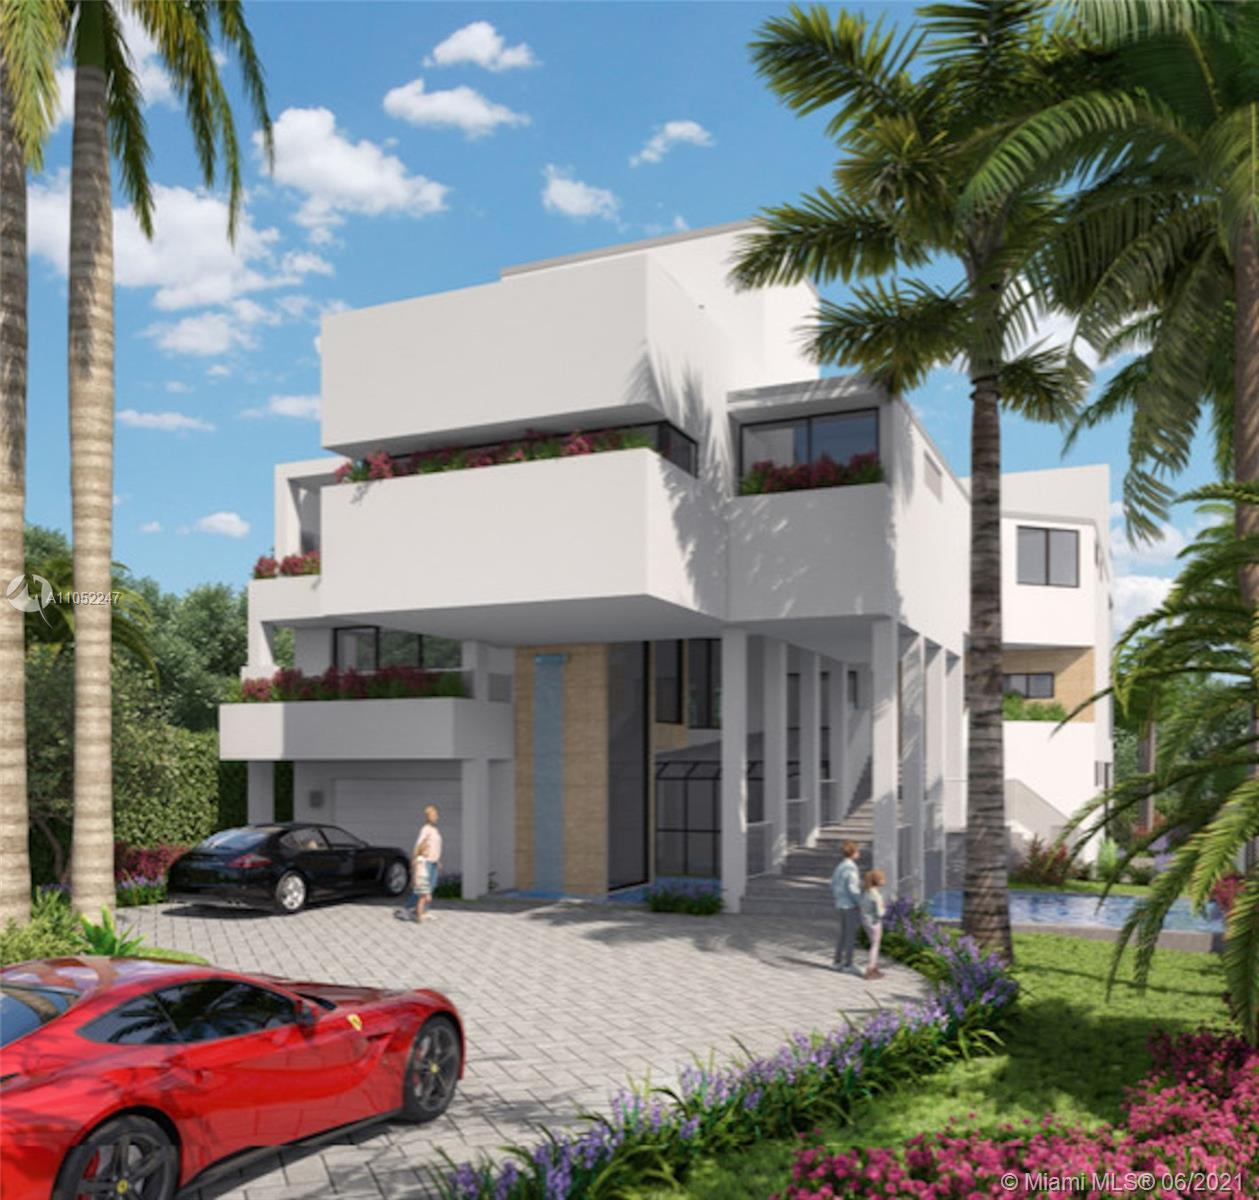 Pre-construction - a work in progress. Unique and most special opportunity to luxuriate in a newly d